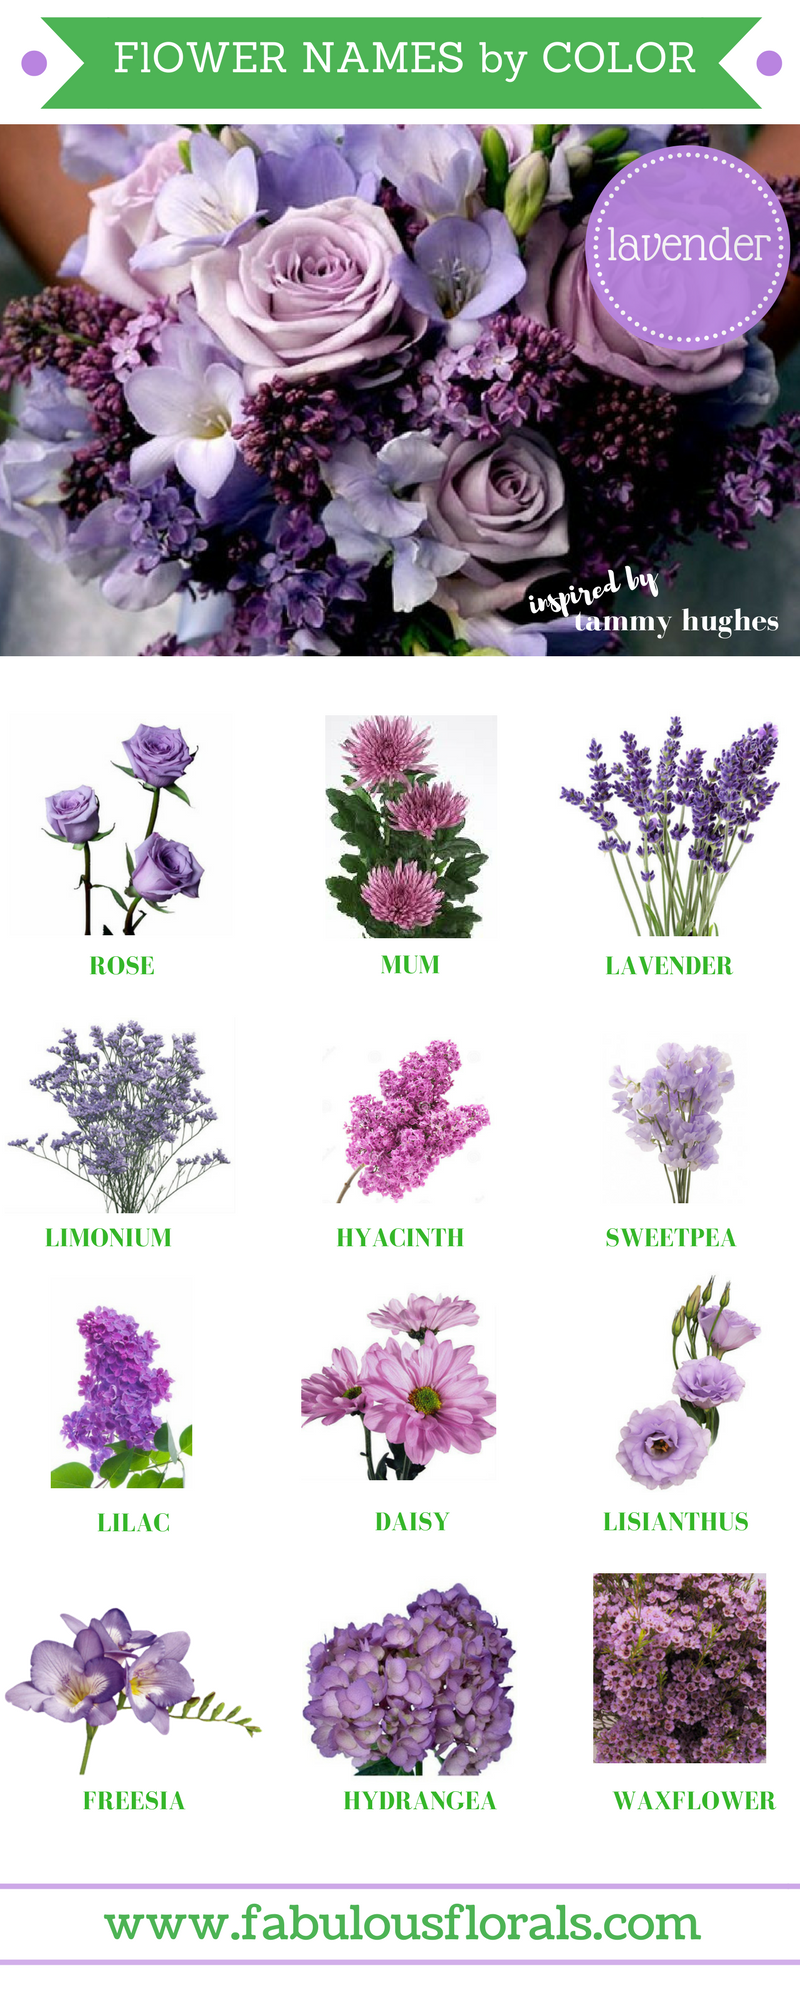 Purples How To DIY Wedding Flowers! 2018 Wedding Flower Trends. www.howtodiyweddingflowers.com Easy DIY Tutorials and How to Tips & Tricks! #diywedding #diyflowers #howtomakeabouquet www.howtodiyweddingflowers.com #purpleweddingflowers